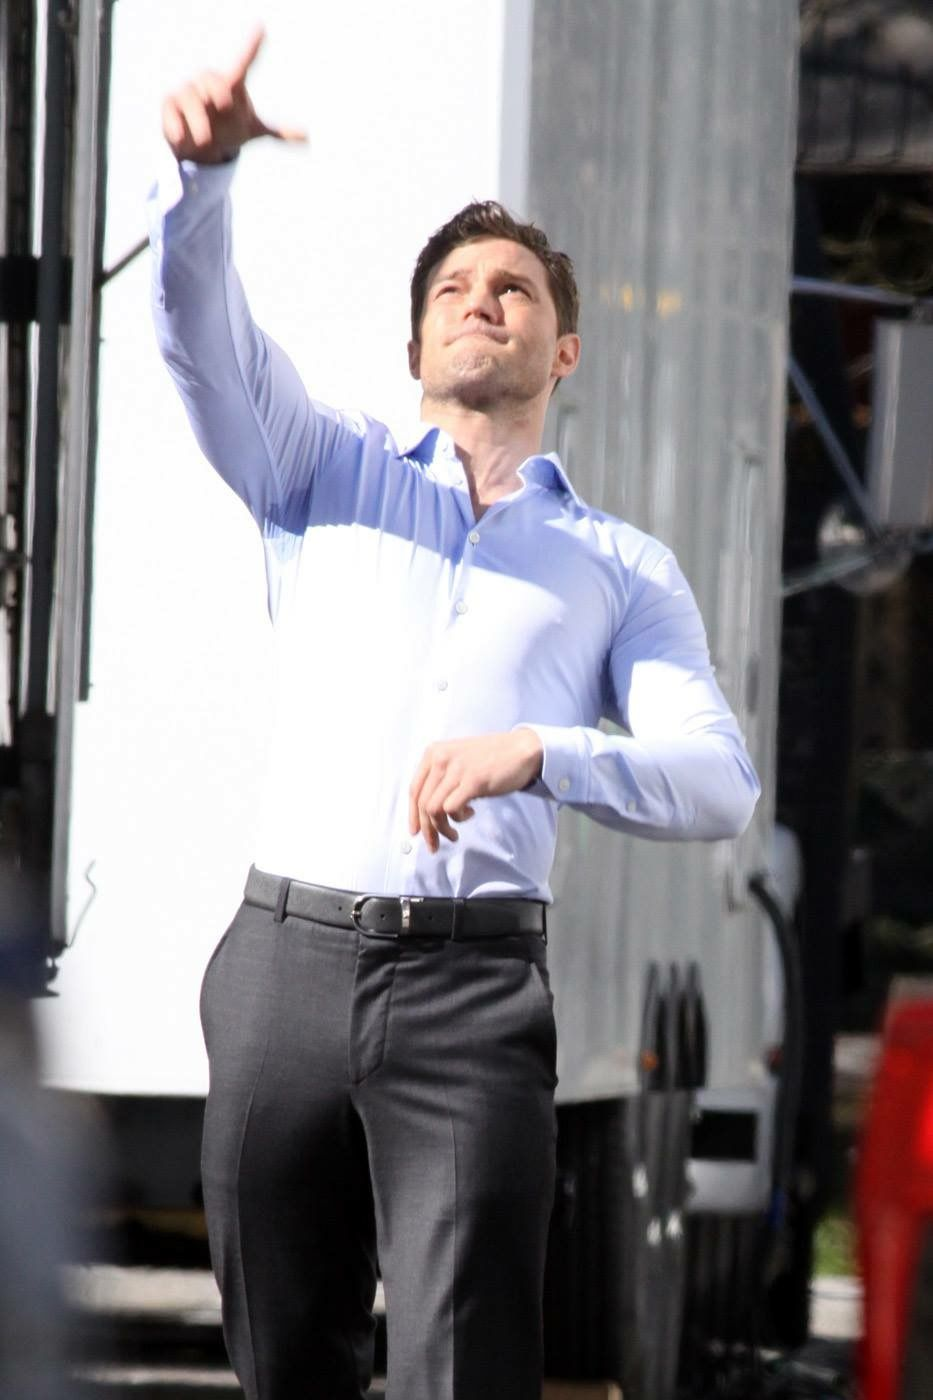 Jamie Dornan enjoying a game of football on the set of Fifty Shades Darker and Freed http://everythingjamiedornan.com/gallery/thumbnails.php?album=186